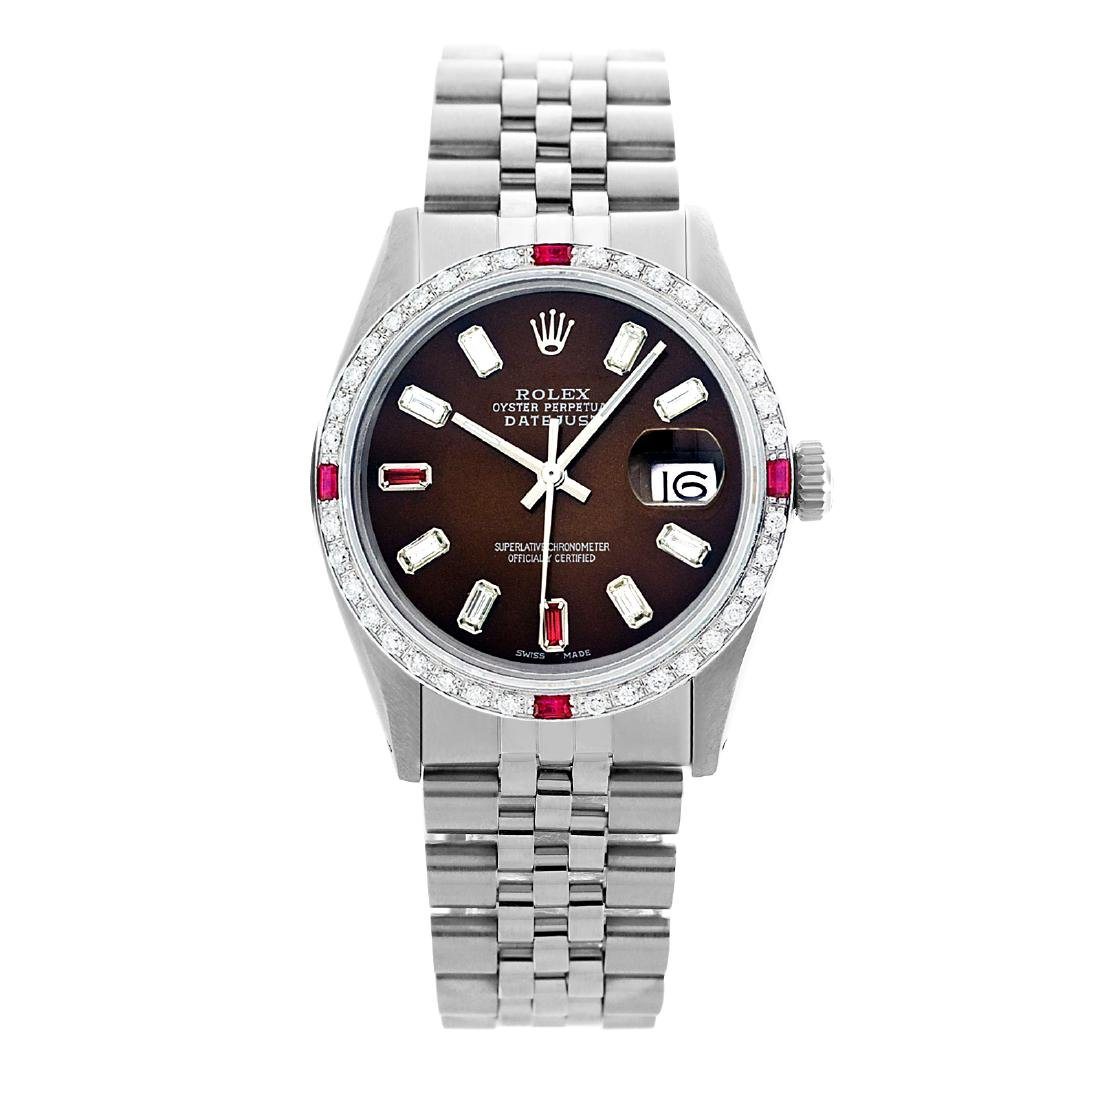 Rolex Men's Stainless Steel, QuickSet, Diam/Ruby Dial & - 2